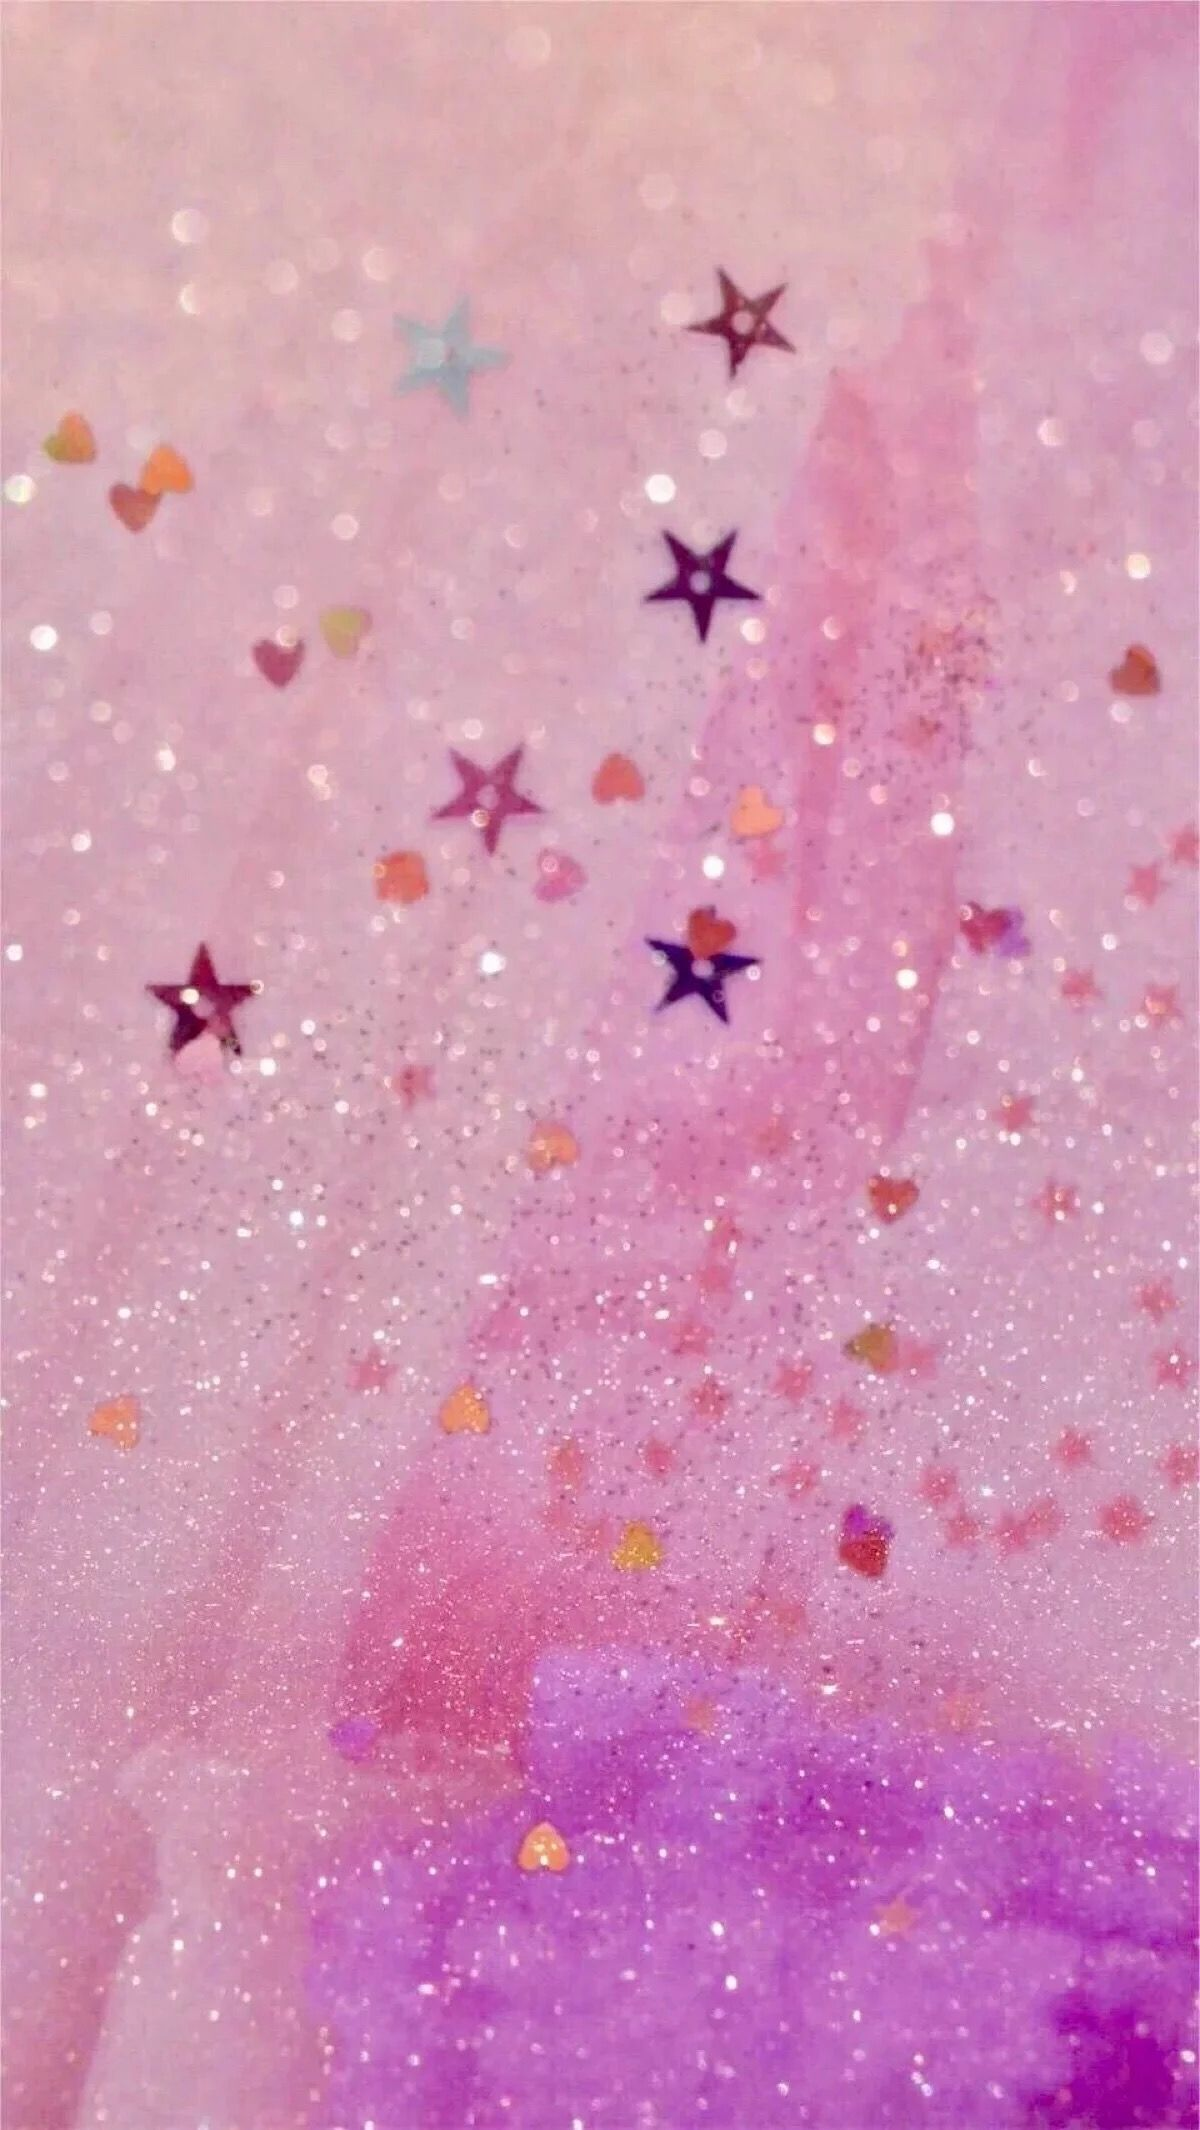 Pink Wallpaper Mobile Backgrounds Iphone Wallpapers Girls Papo Glitter S For